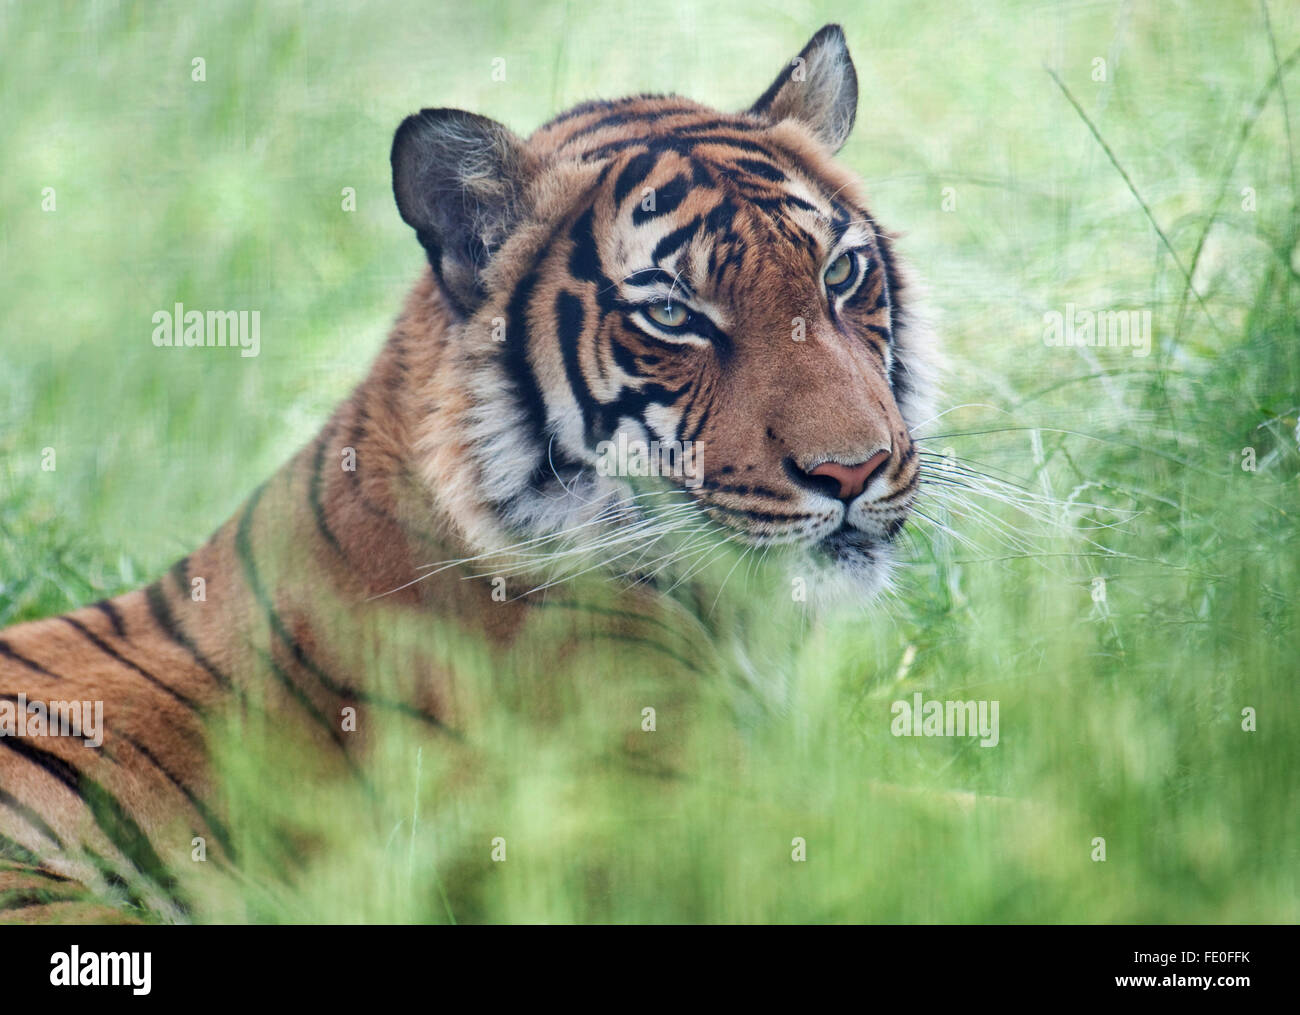 Malayan Tiger, Panthera tigris jacksoni, Stock Photo